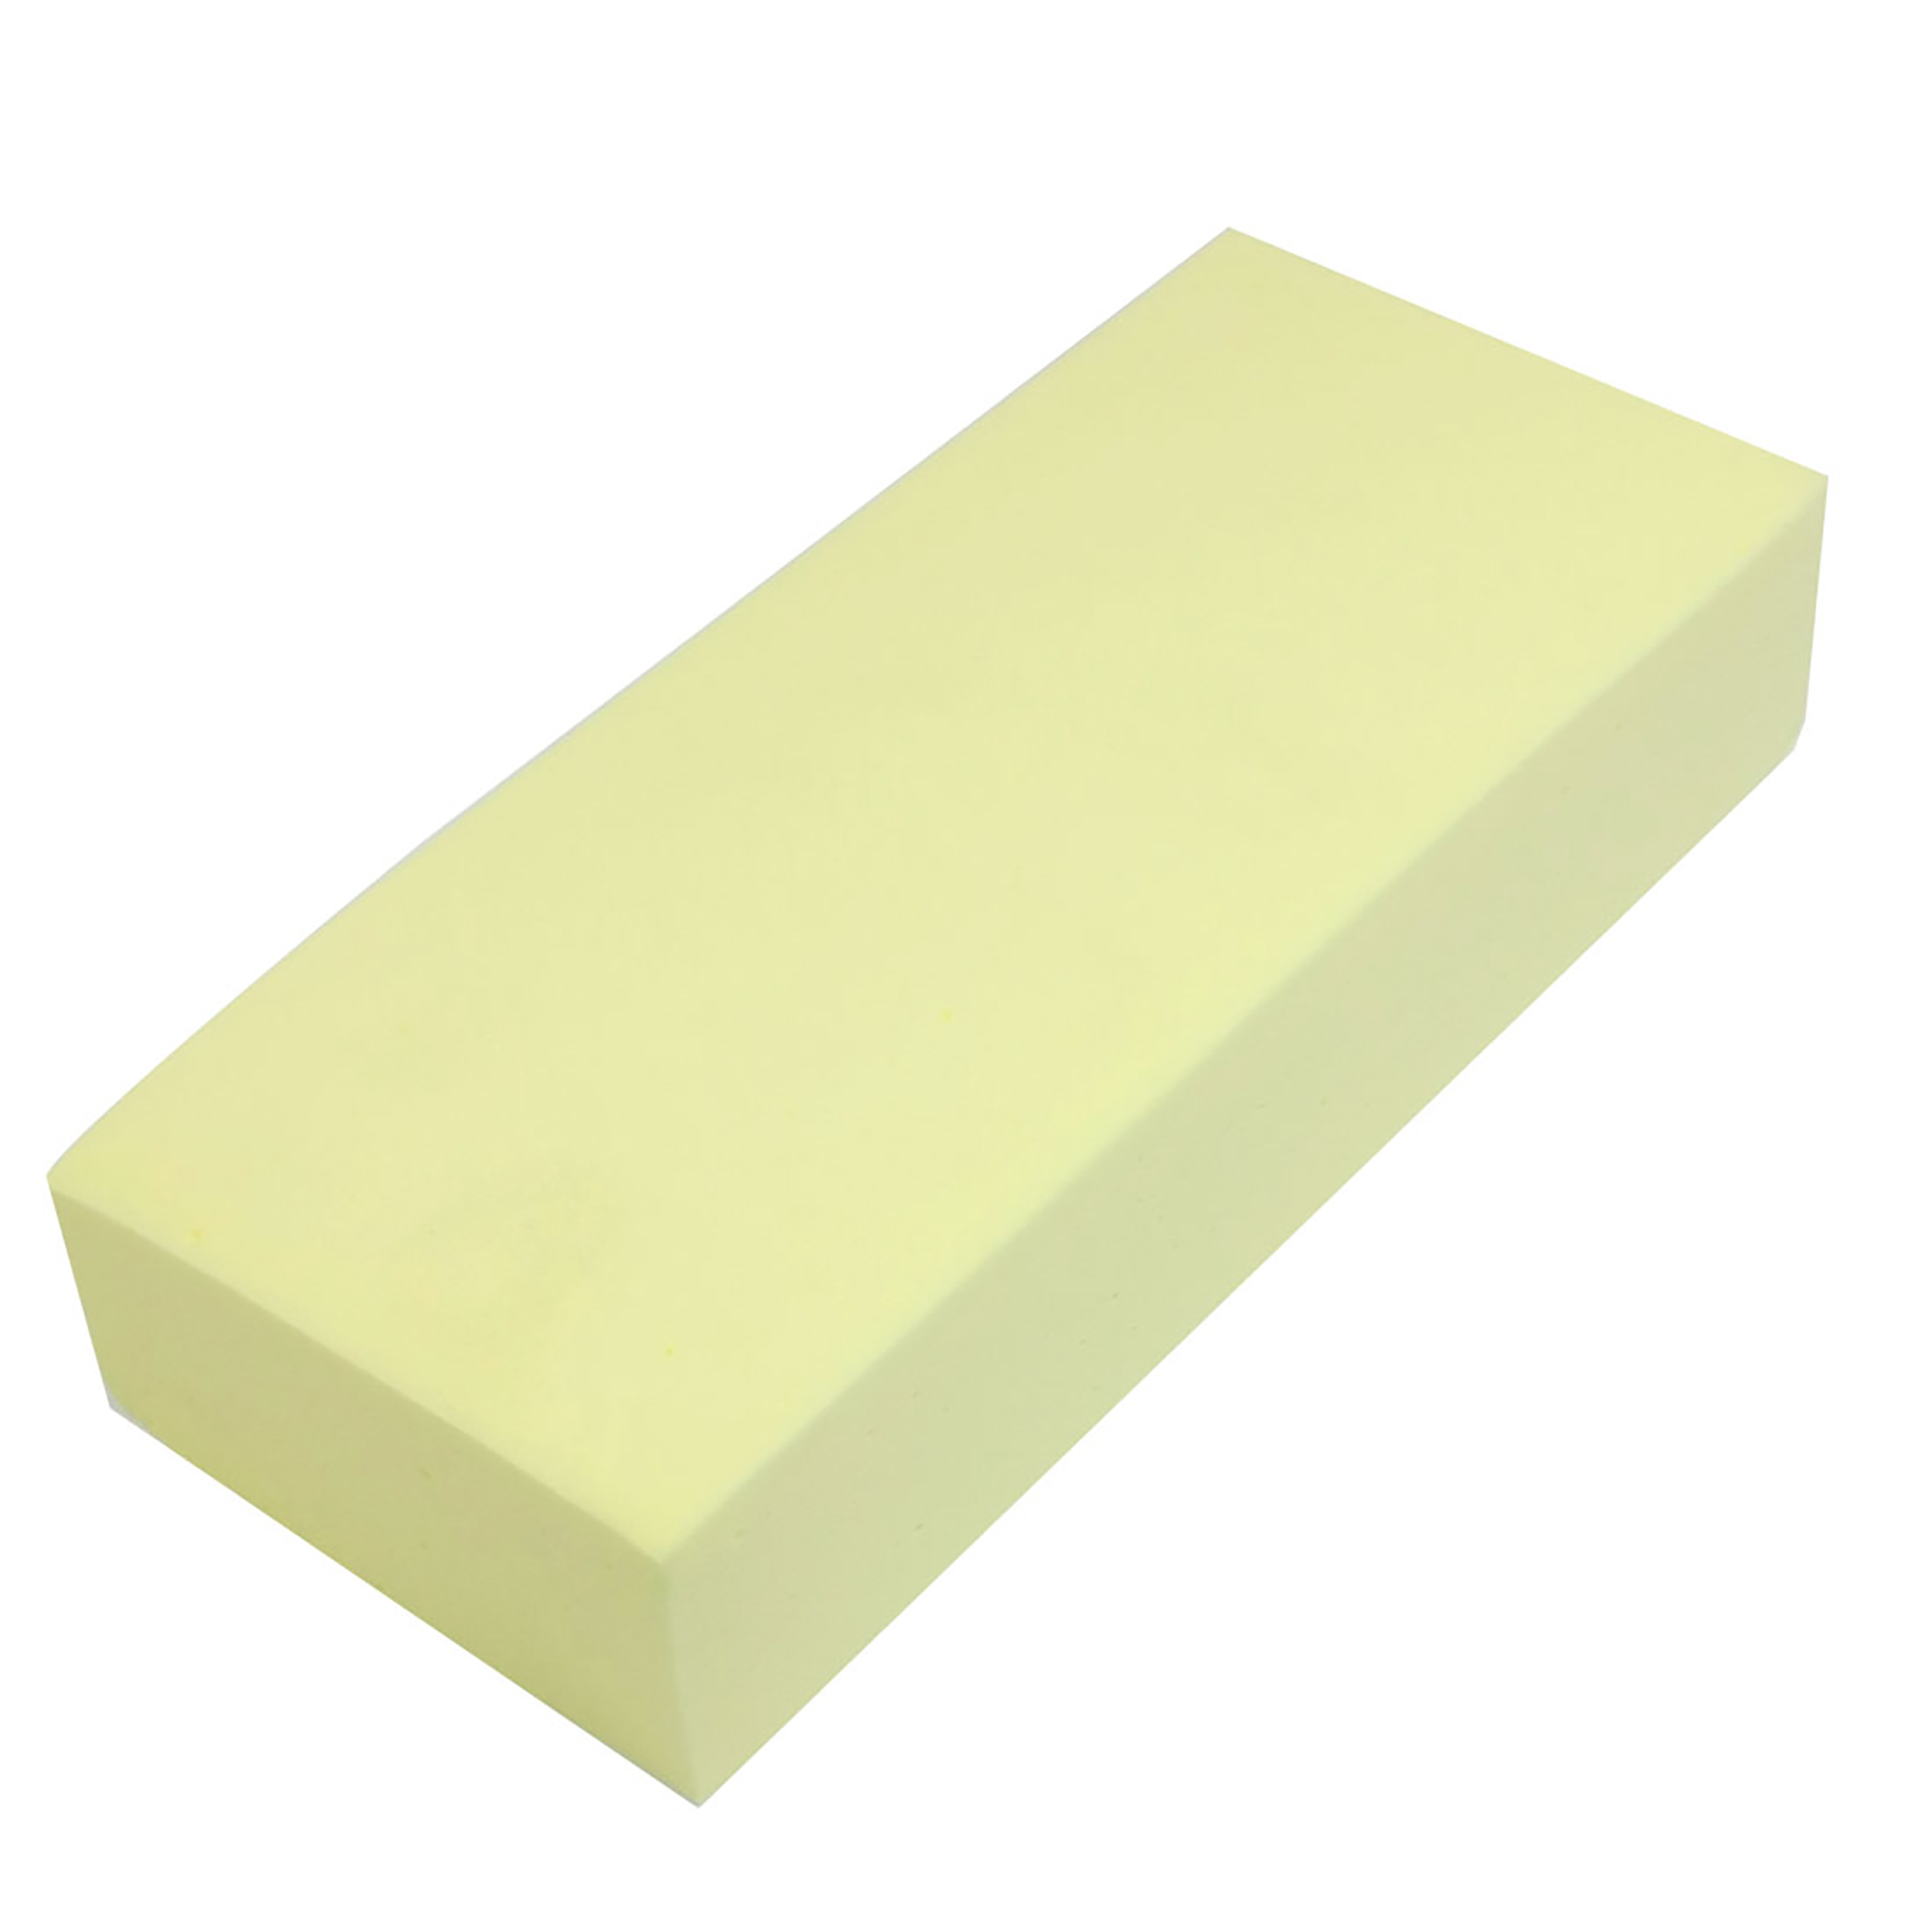 Home Office Boat Auto Car PVA Suction Sponge Block Cleaning Tool Yellow